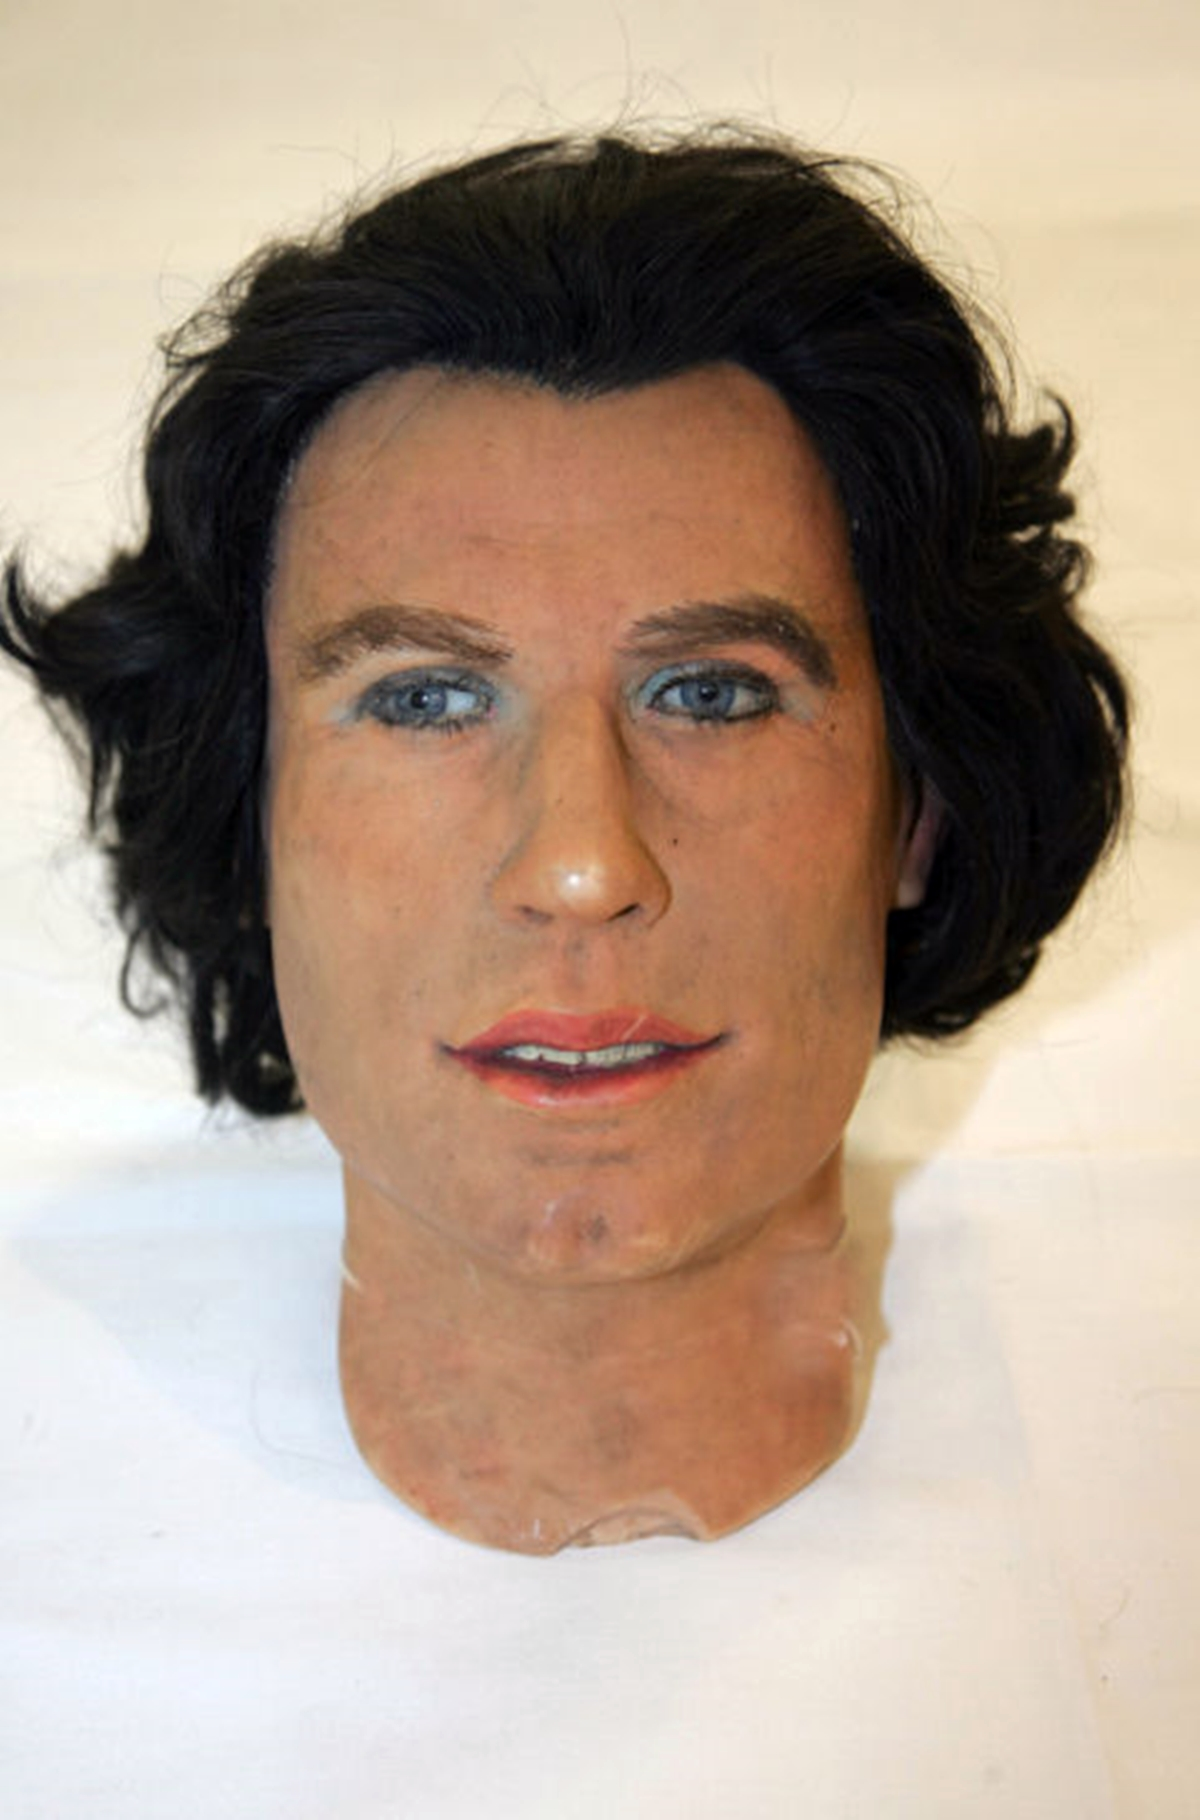 7 9 The 16 Worst Celebrity Waxworks Of All Time